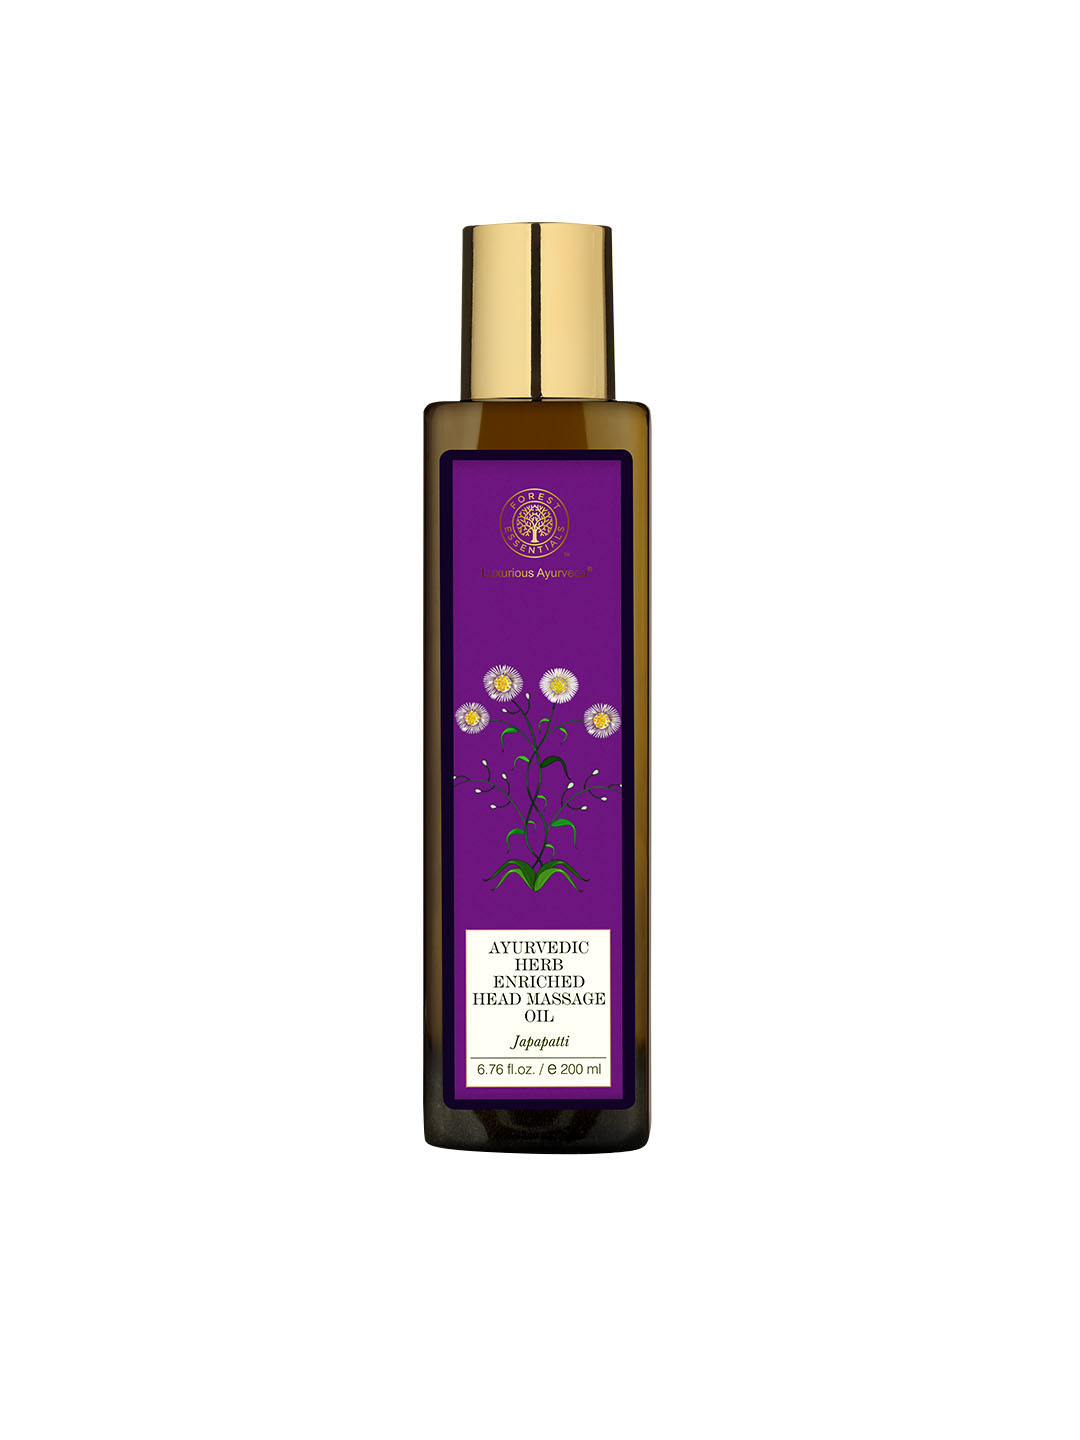 Forest Essentials Unisex Japapatti Head Massage Oil image